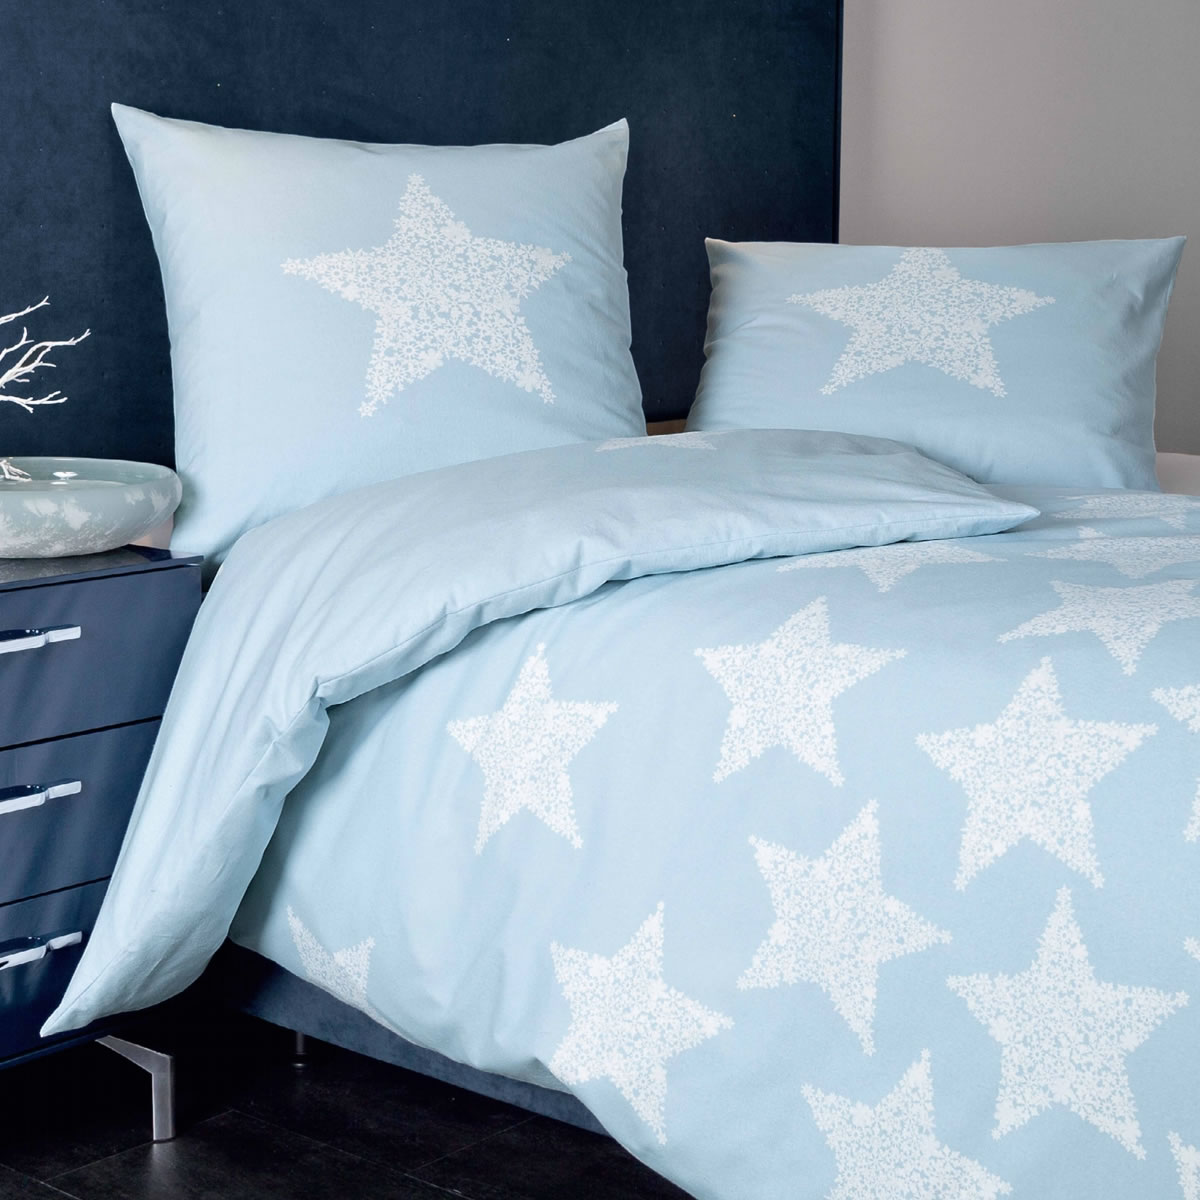 janine fein biber bettw sche davos 65018 02 kristallblau stern stars. Black Bedroom Furniture Sets. Home Design Ideas